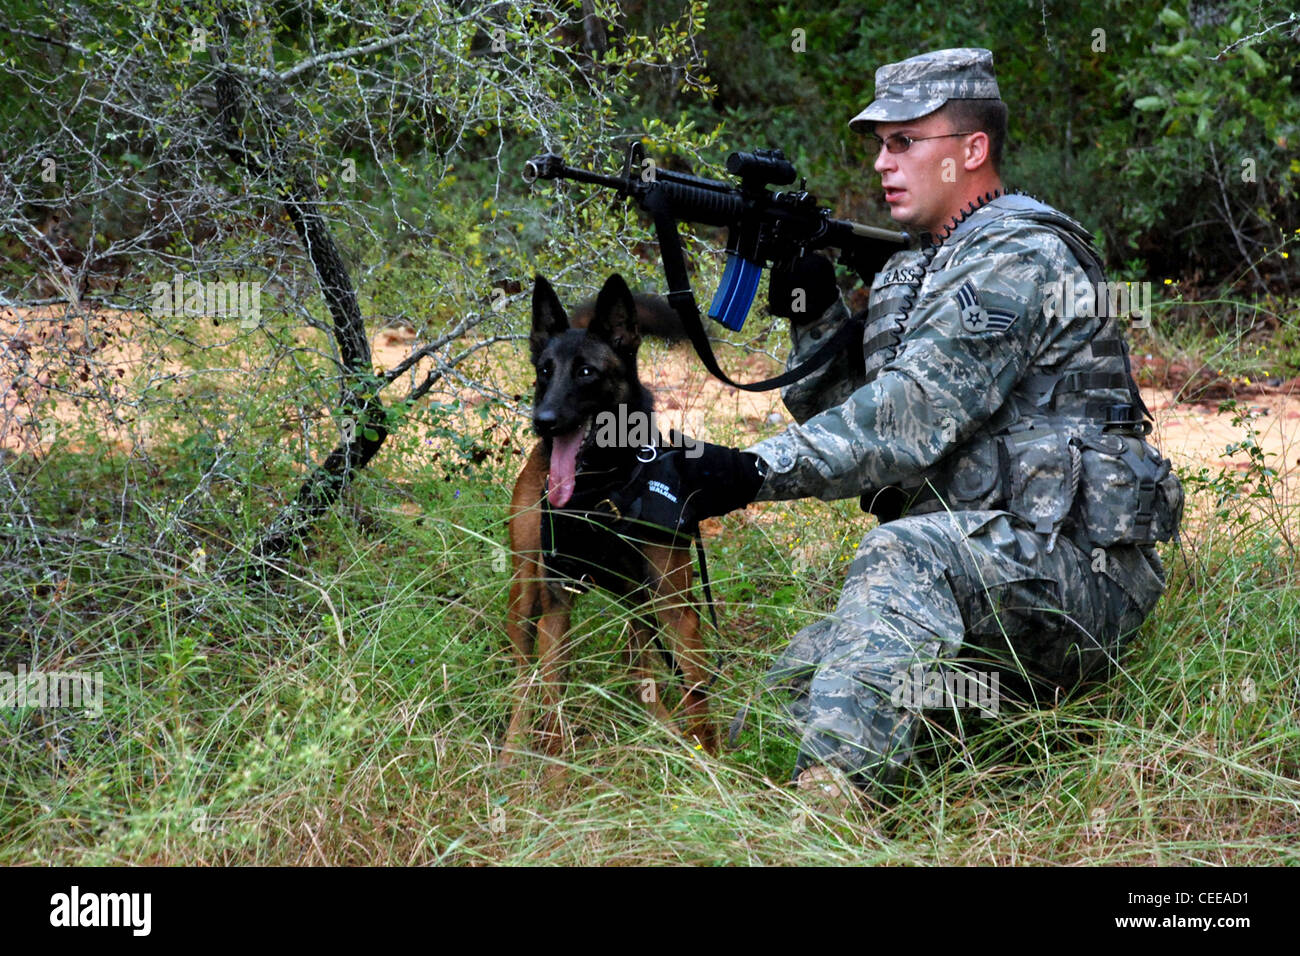 Senior Airman Eric Glass and his military working dog, Kim, watch a 'suspect' during a Brave Defender patrol - Stock Image